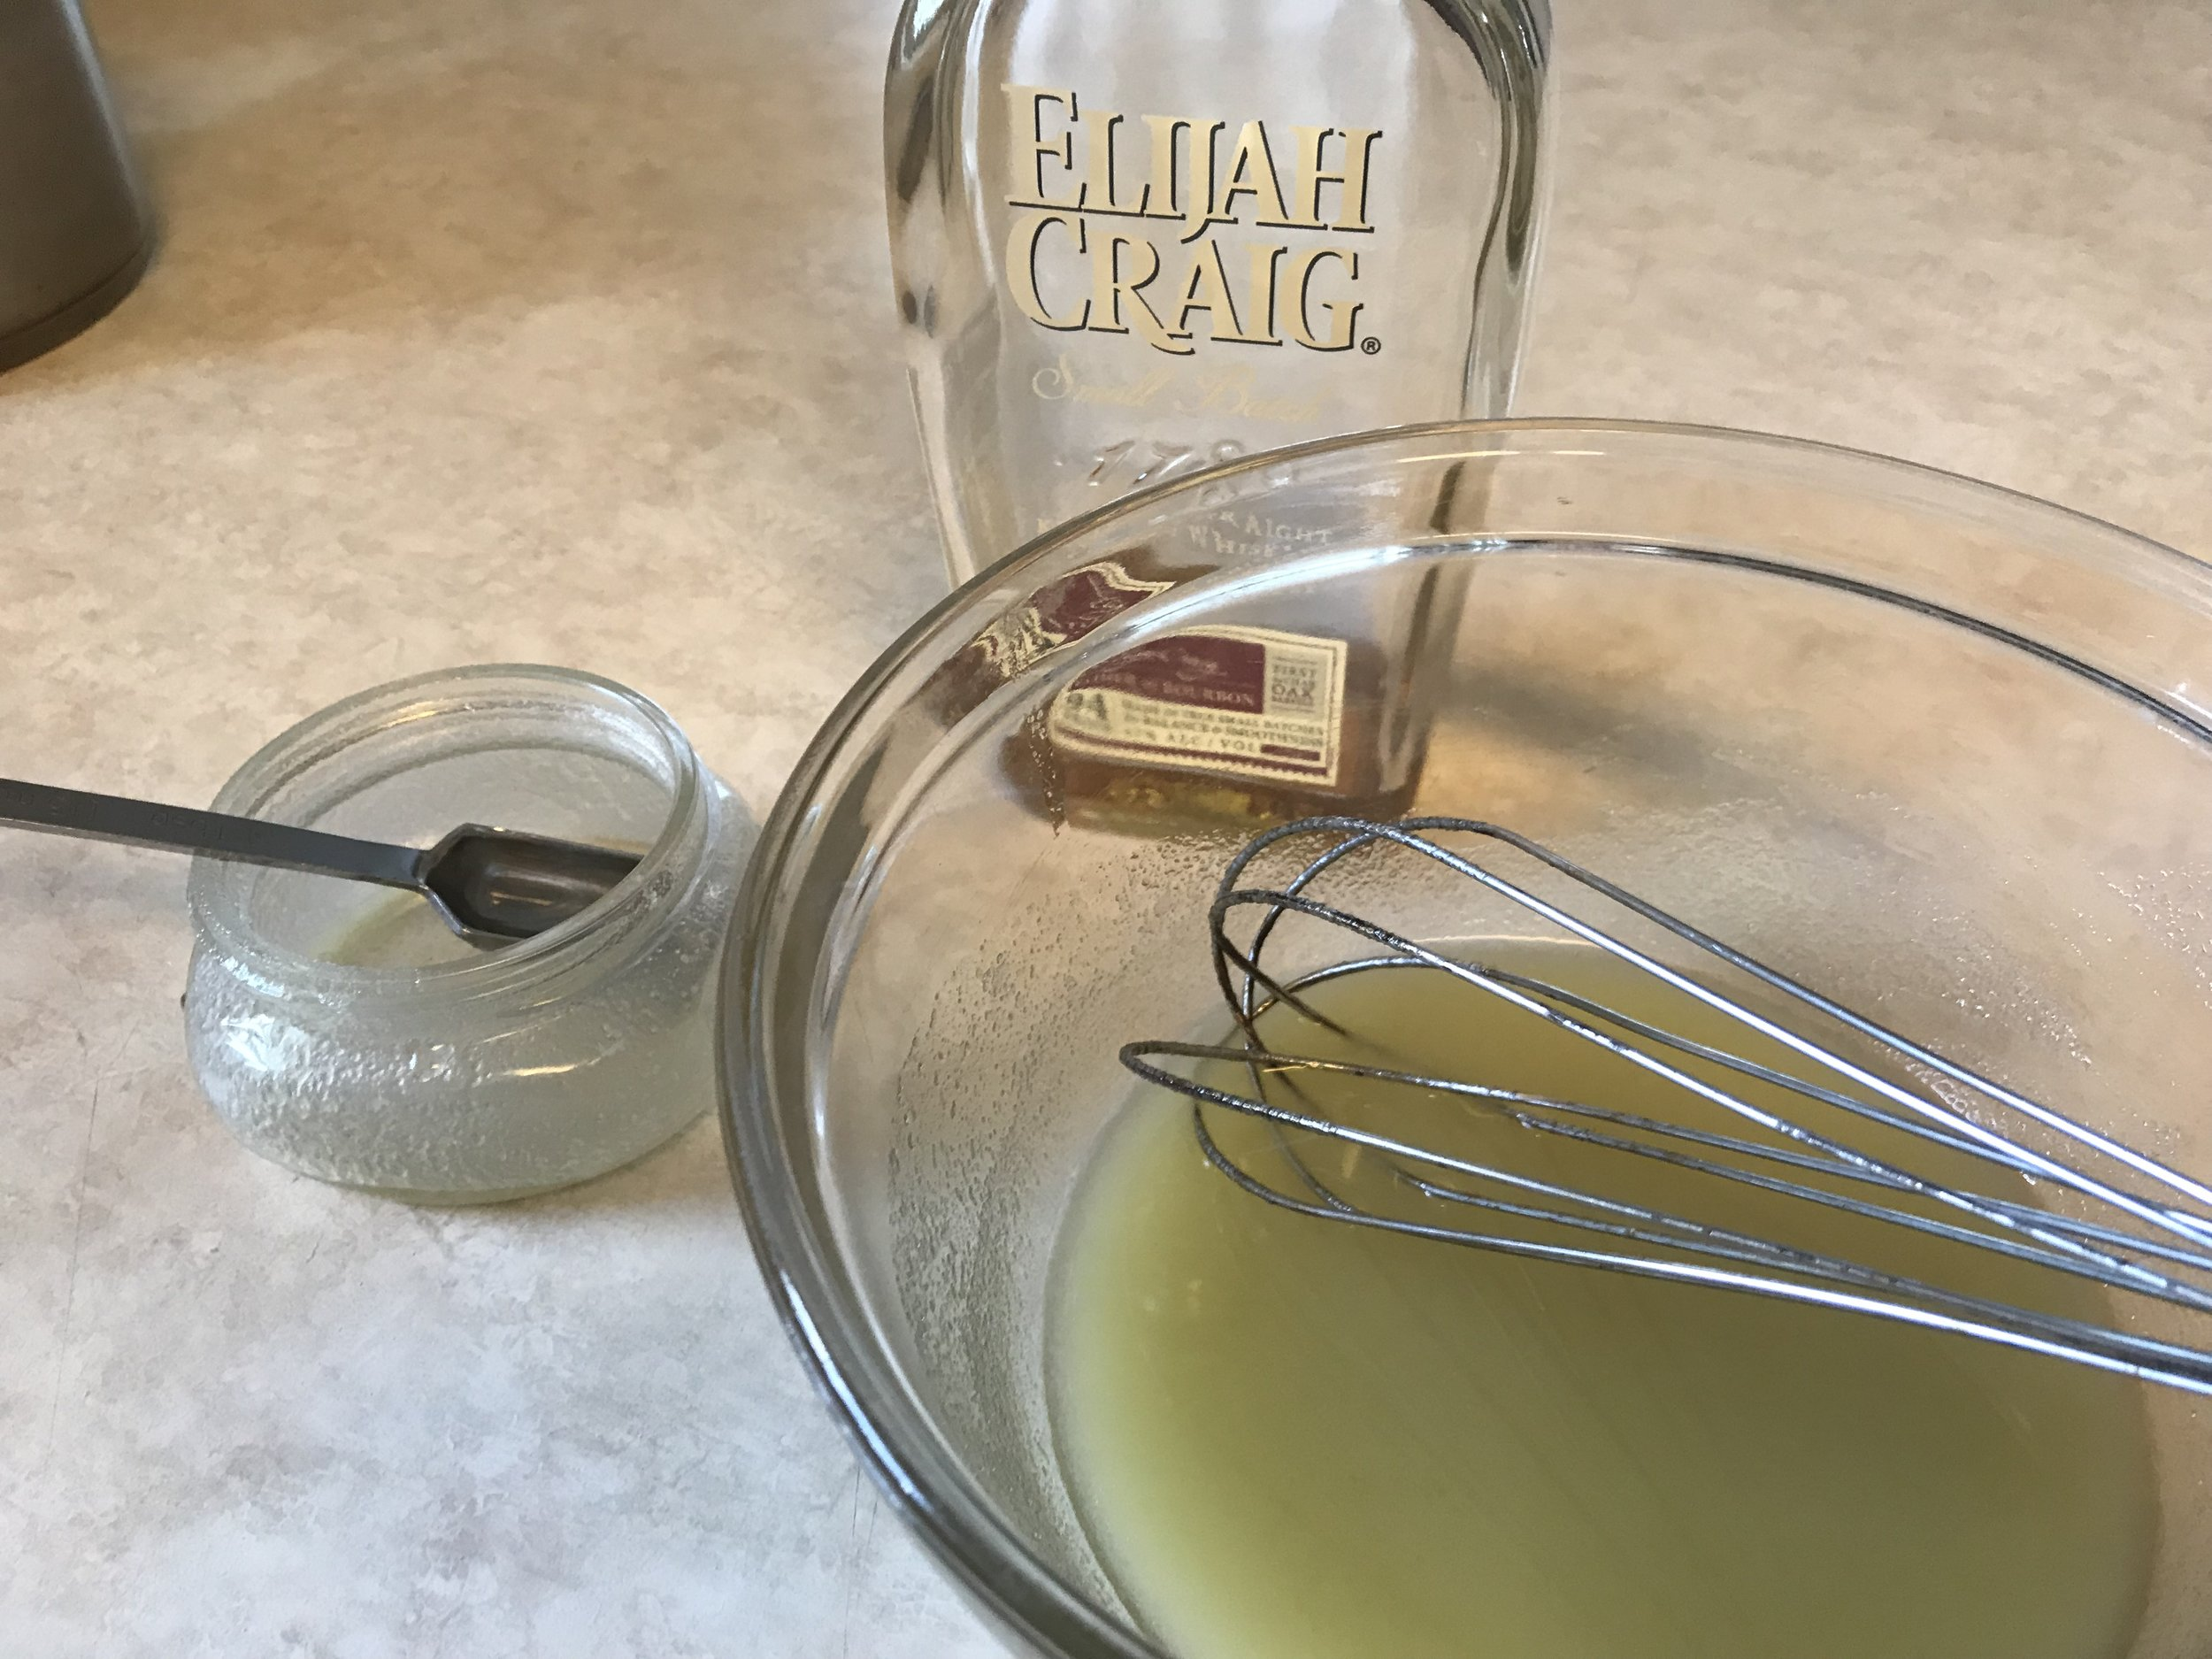 Nontoxic homemade beard balm for sensitive skin and made with essential oils